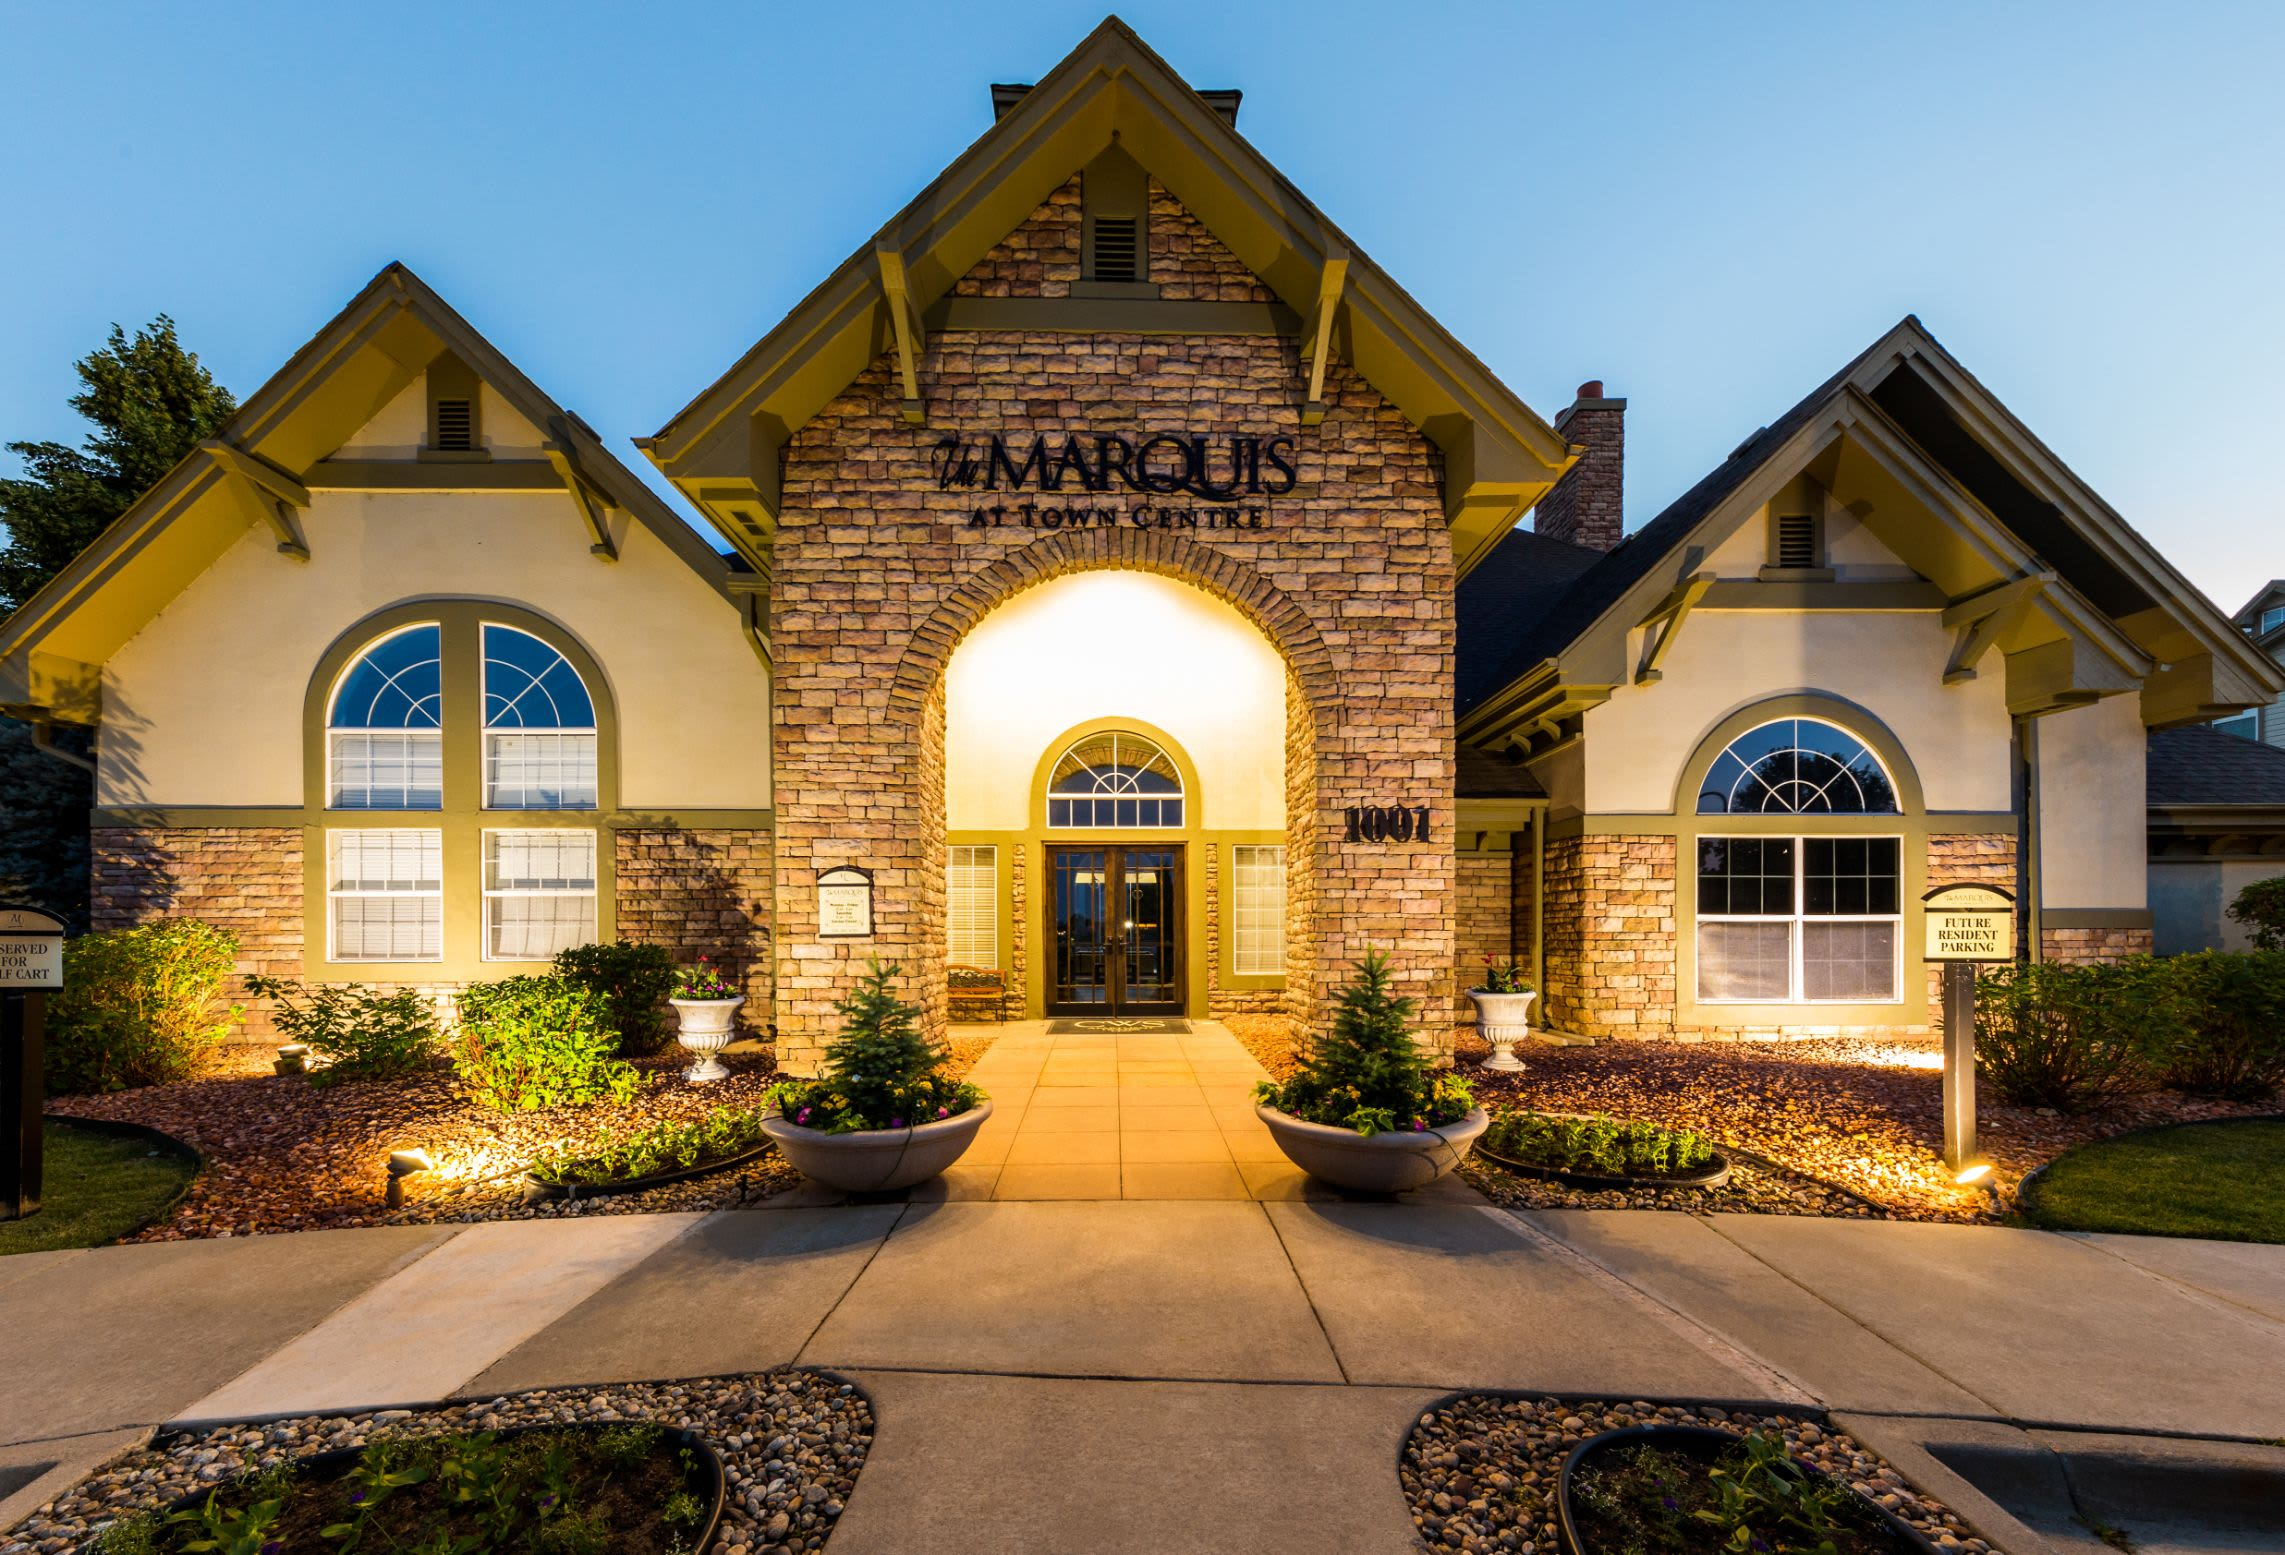 Gallery of photos for Marquis at Town Centre in Broomfield, Colorado